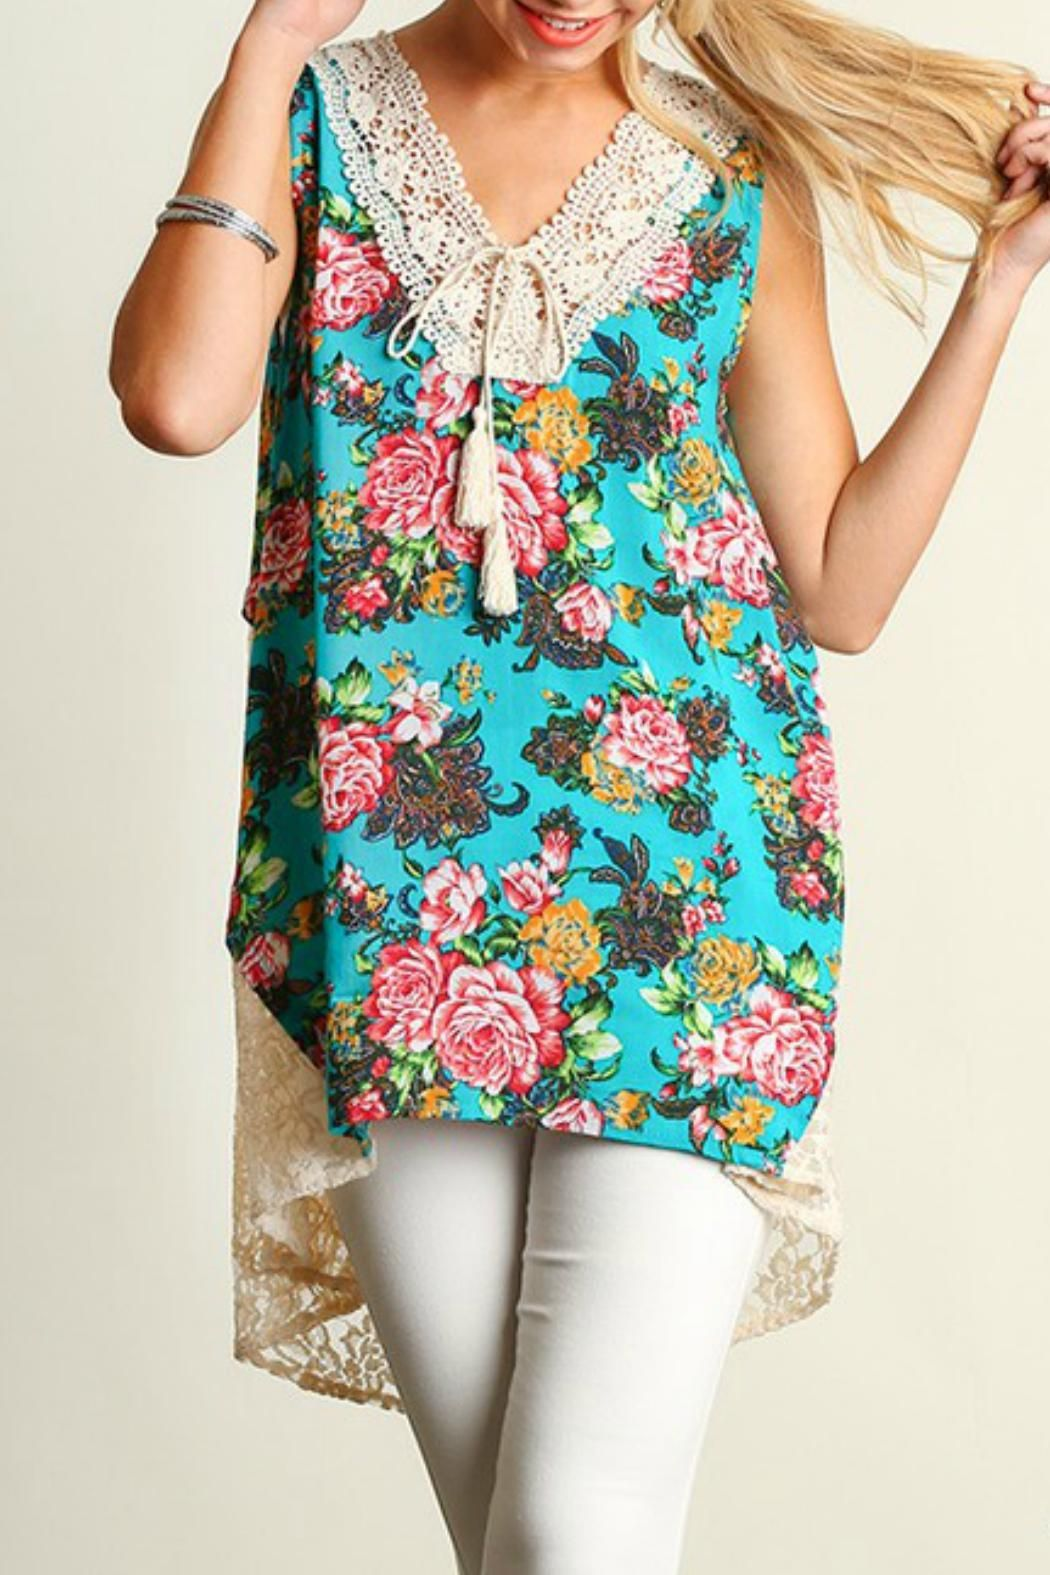 9b0db81f465 This tunic has a lace v neck with tassel ties and high-low lace hem line.  Be Jaded Floral-Lace Tunic by Umgee USA. Clothing Clothing ...